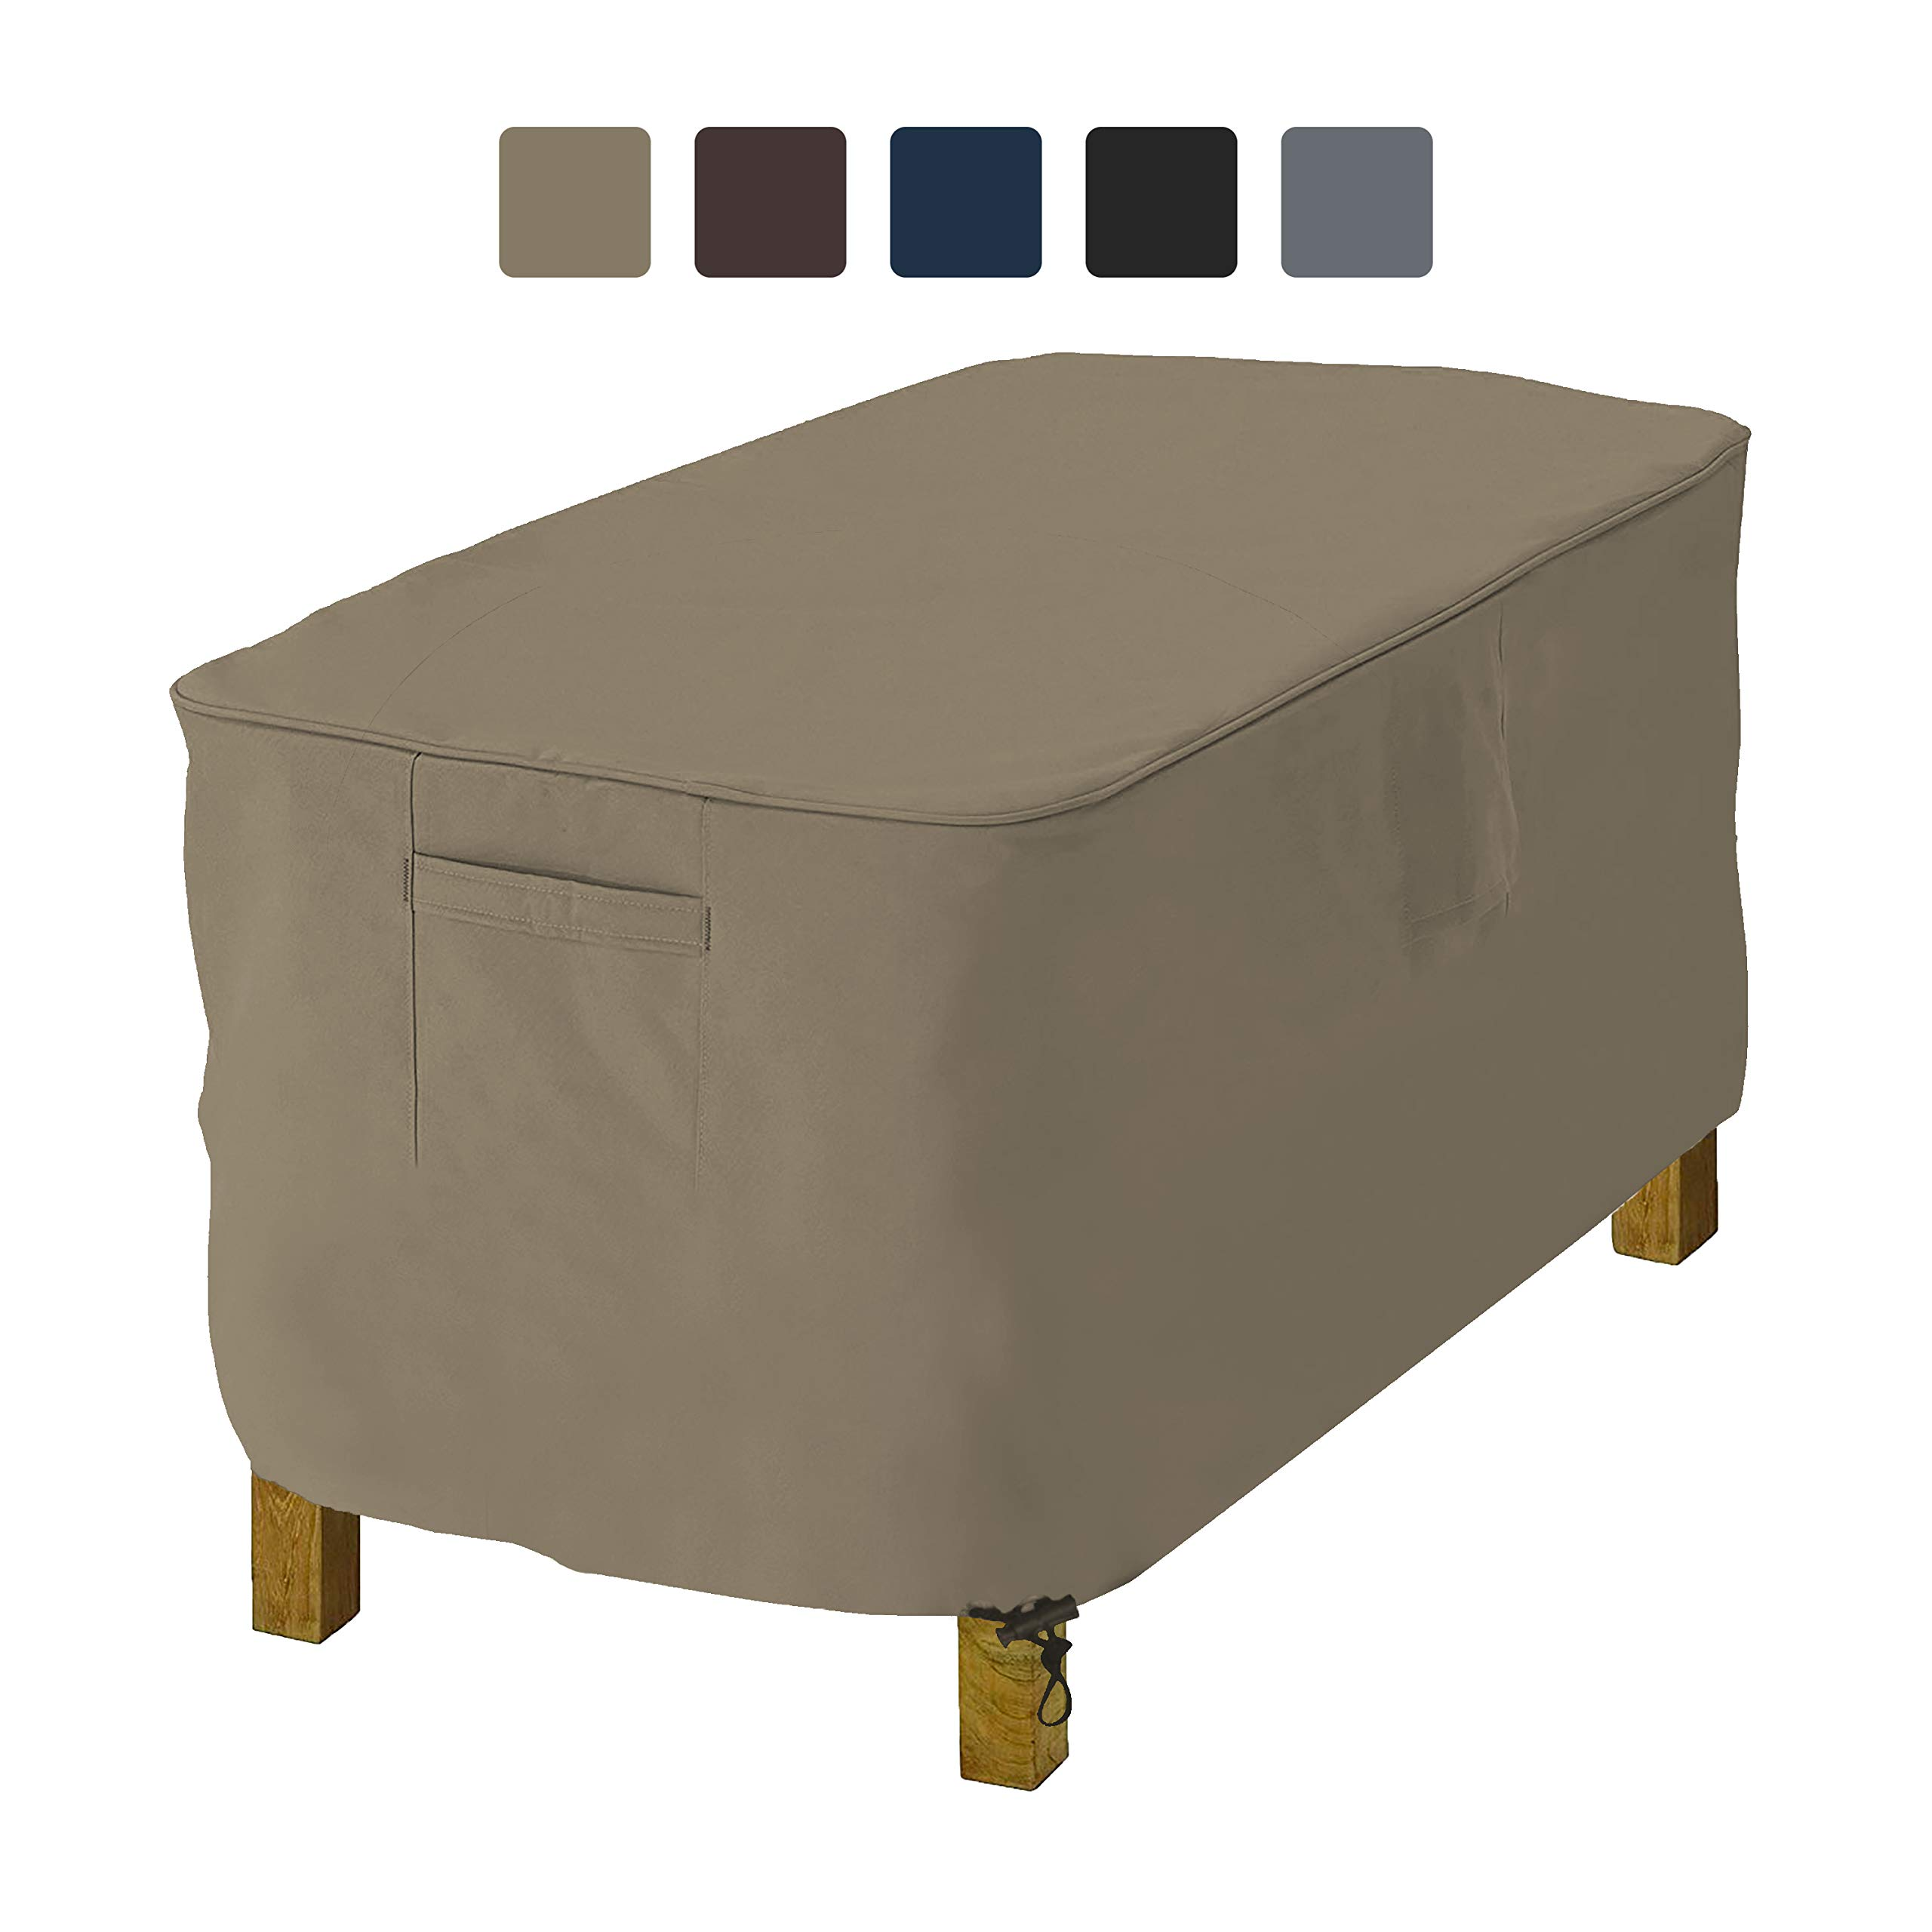 COVERS & ALL Rectangle Ottoman Cover 12 Oz Waterproof - 100% UV & Weather Resistant Outdoor Ottoman Cover with Air Pockets & Drawstring for Snug Fit (30'' W x 52'' L x 18'' H, Beige)